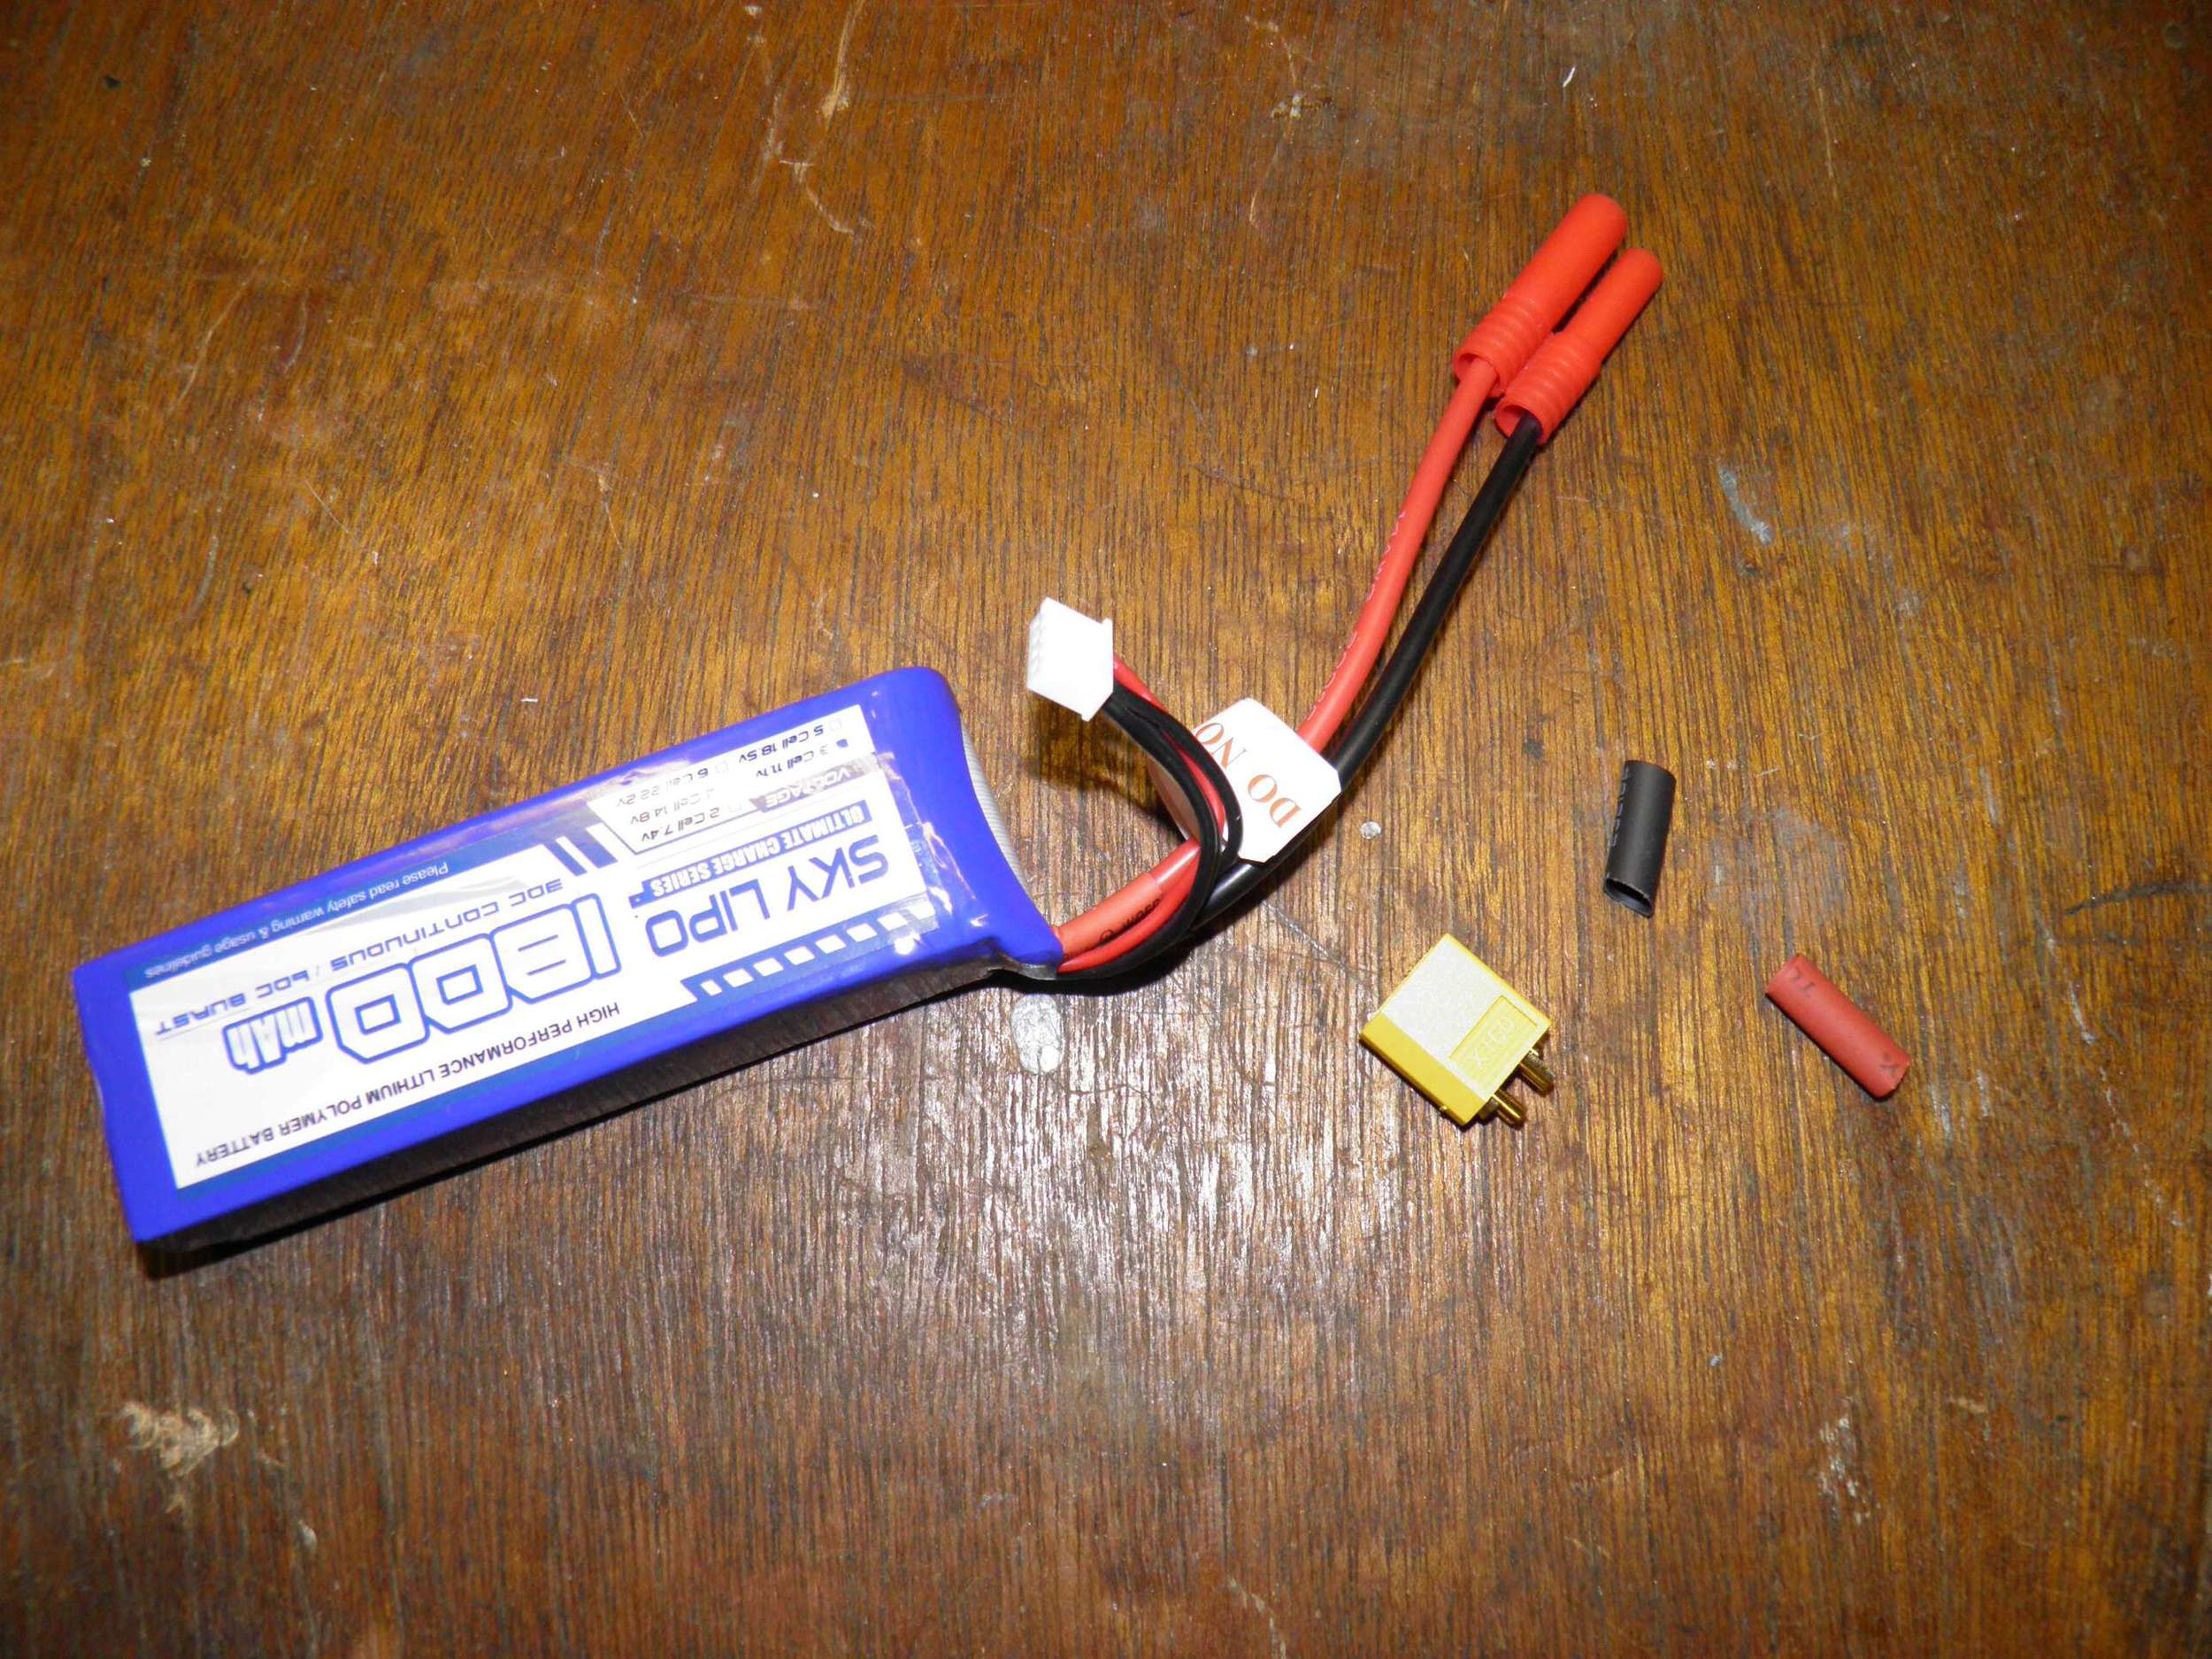 Battery, female xt60 connector, and Heat shrink